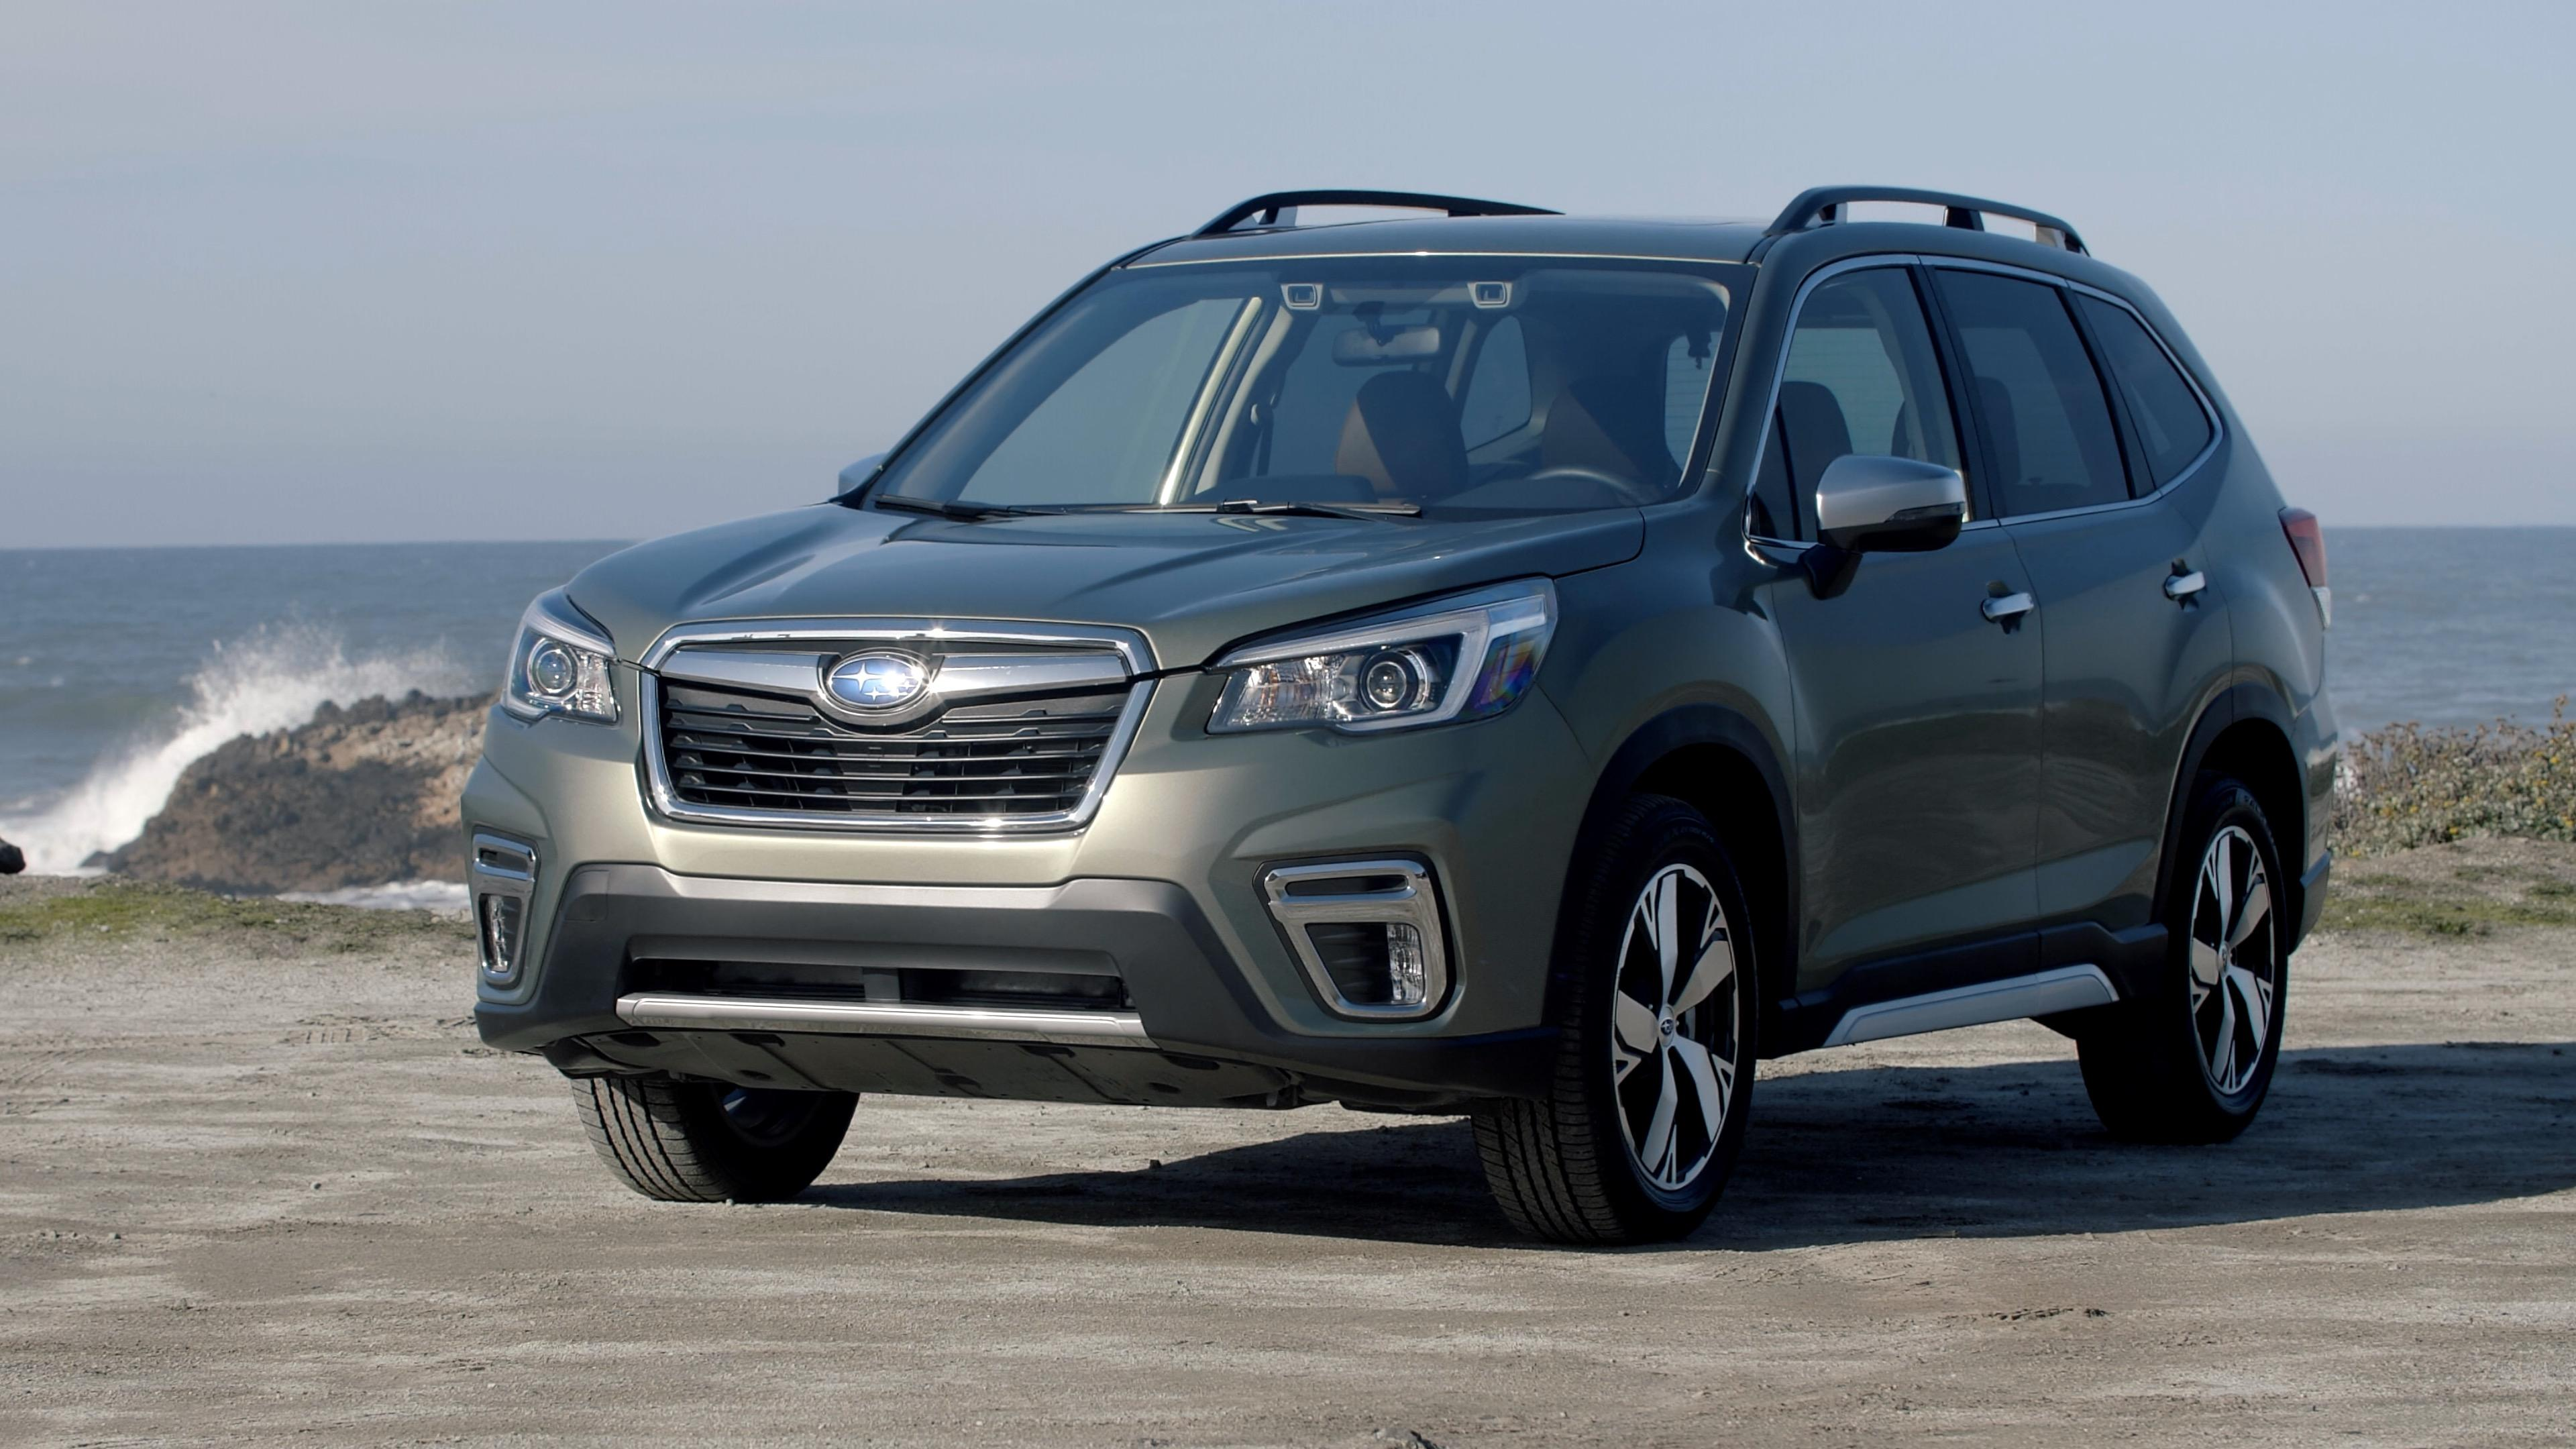 Video: Meet the familiar, functional 2019 Subaru Forester